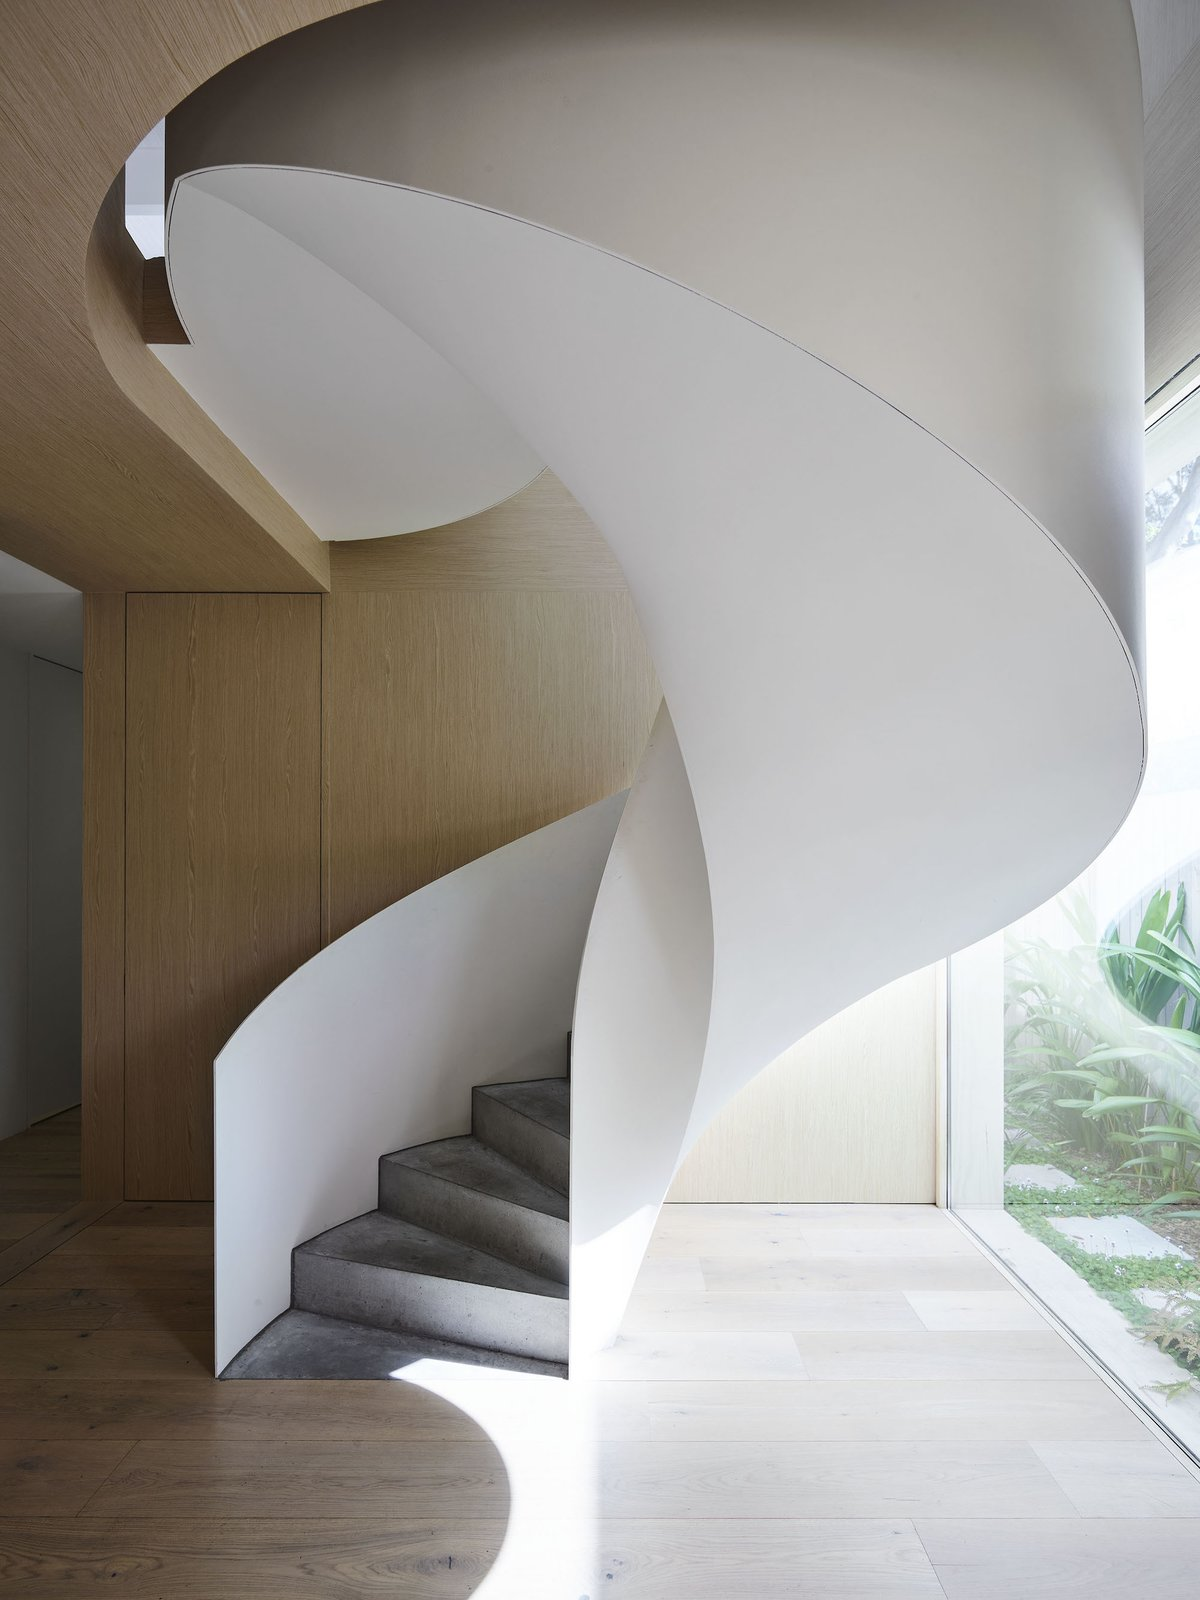 Staircase in Tree House by Madeleine Blanchfield Architects